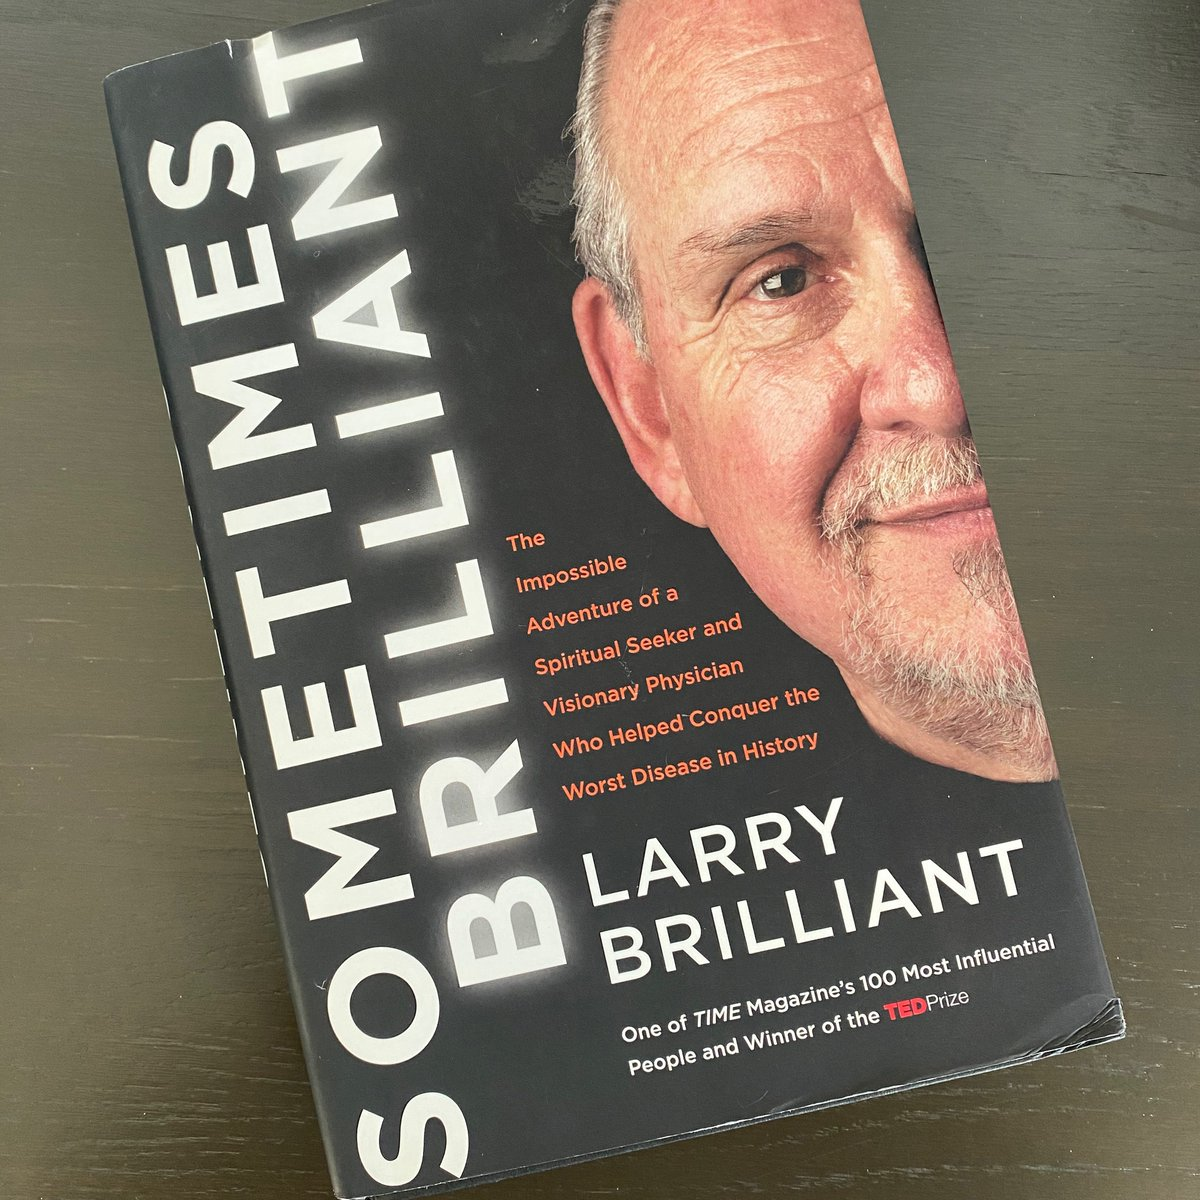 During this pandemic, you might be inspired by the heroic efforts of a man who was instrumental in the eradication of an even deadlier one—smallpox. Dr. Larry Brilliant's work with the WHO effectively helped to wipe this disease off the face of the globe. Great read!